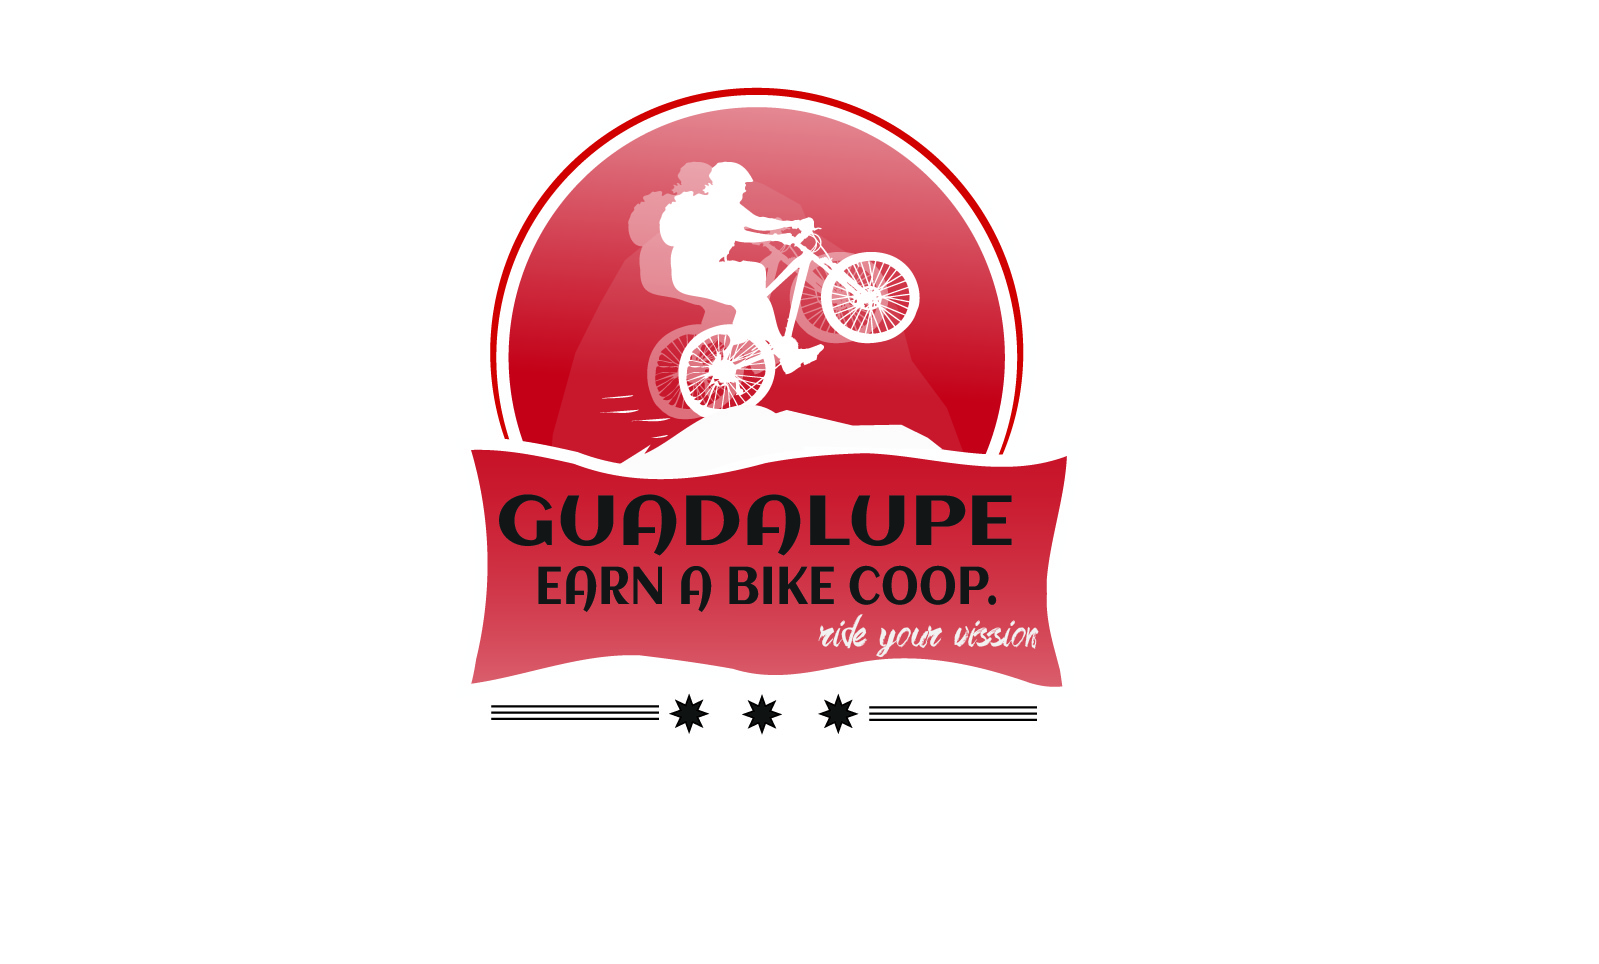 Logo Design by lde05 - Entry No. 63 in the Logo Design Contest Inspiring Logo Design for Guadalupe Earn a Bike Coop..